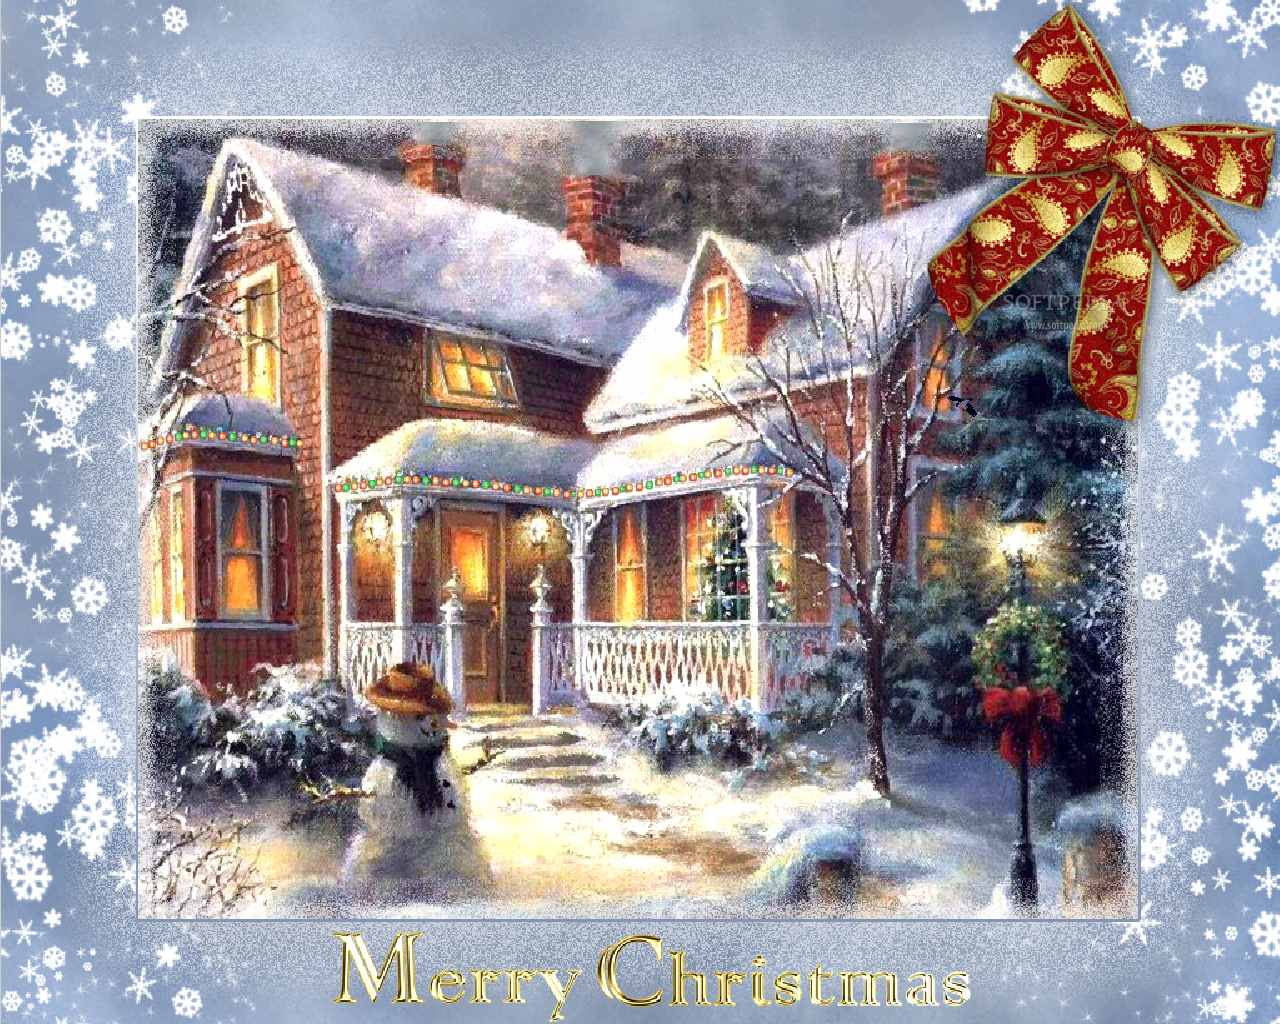 Free Games Wallpapers: Free 3D Christmas Wallpapers - Download Online ...